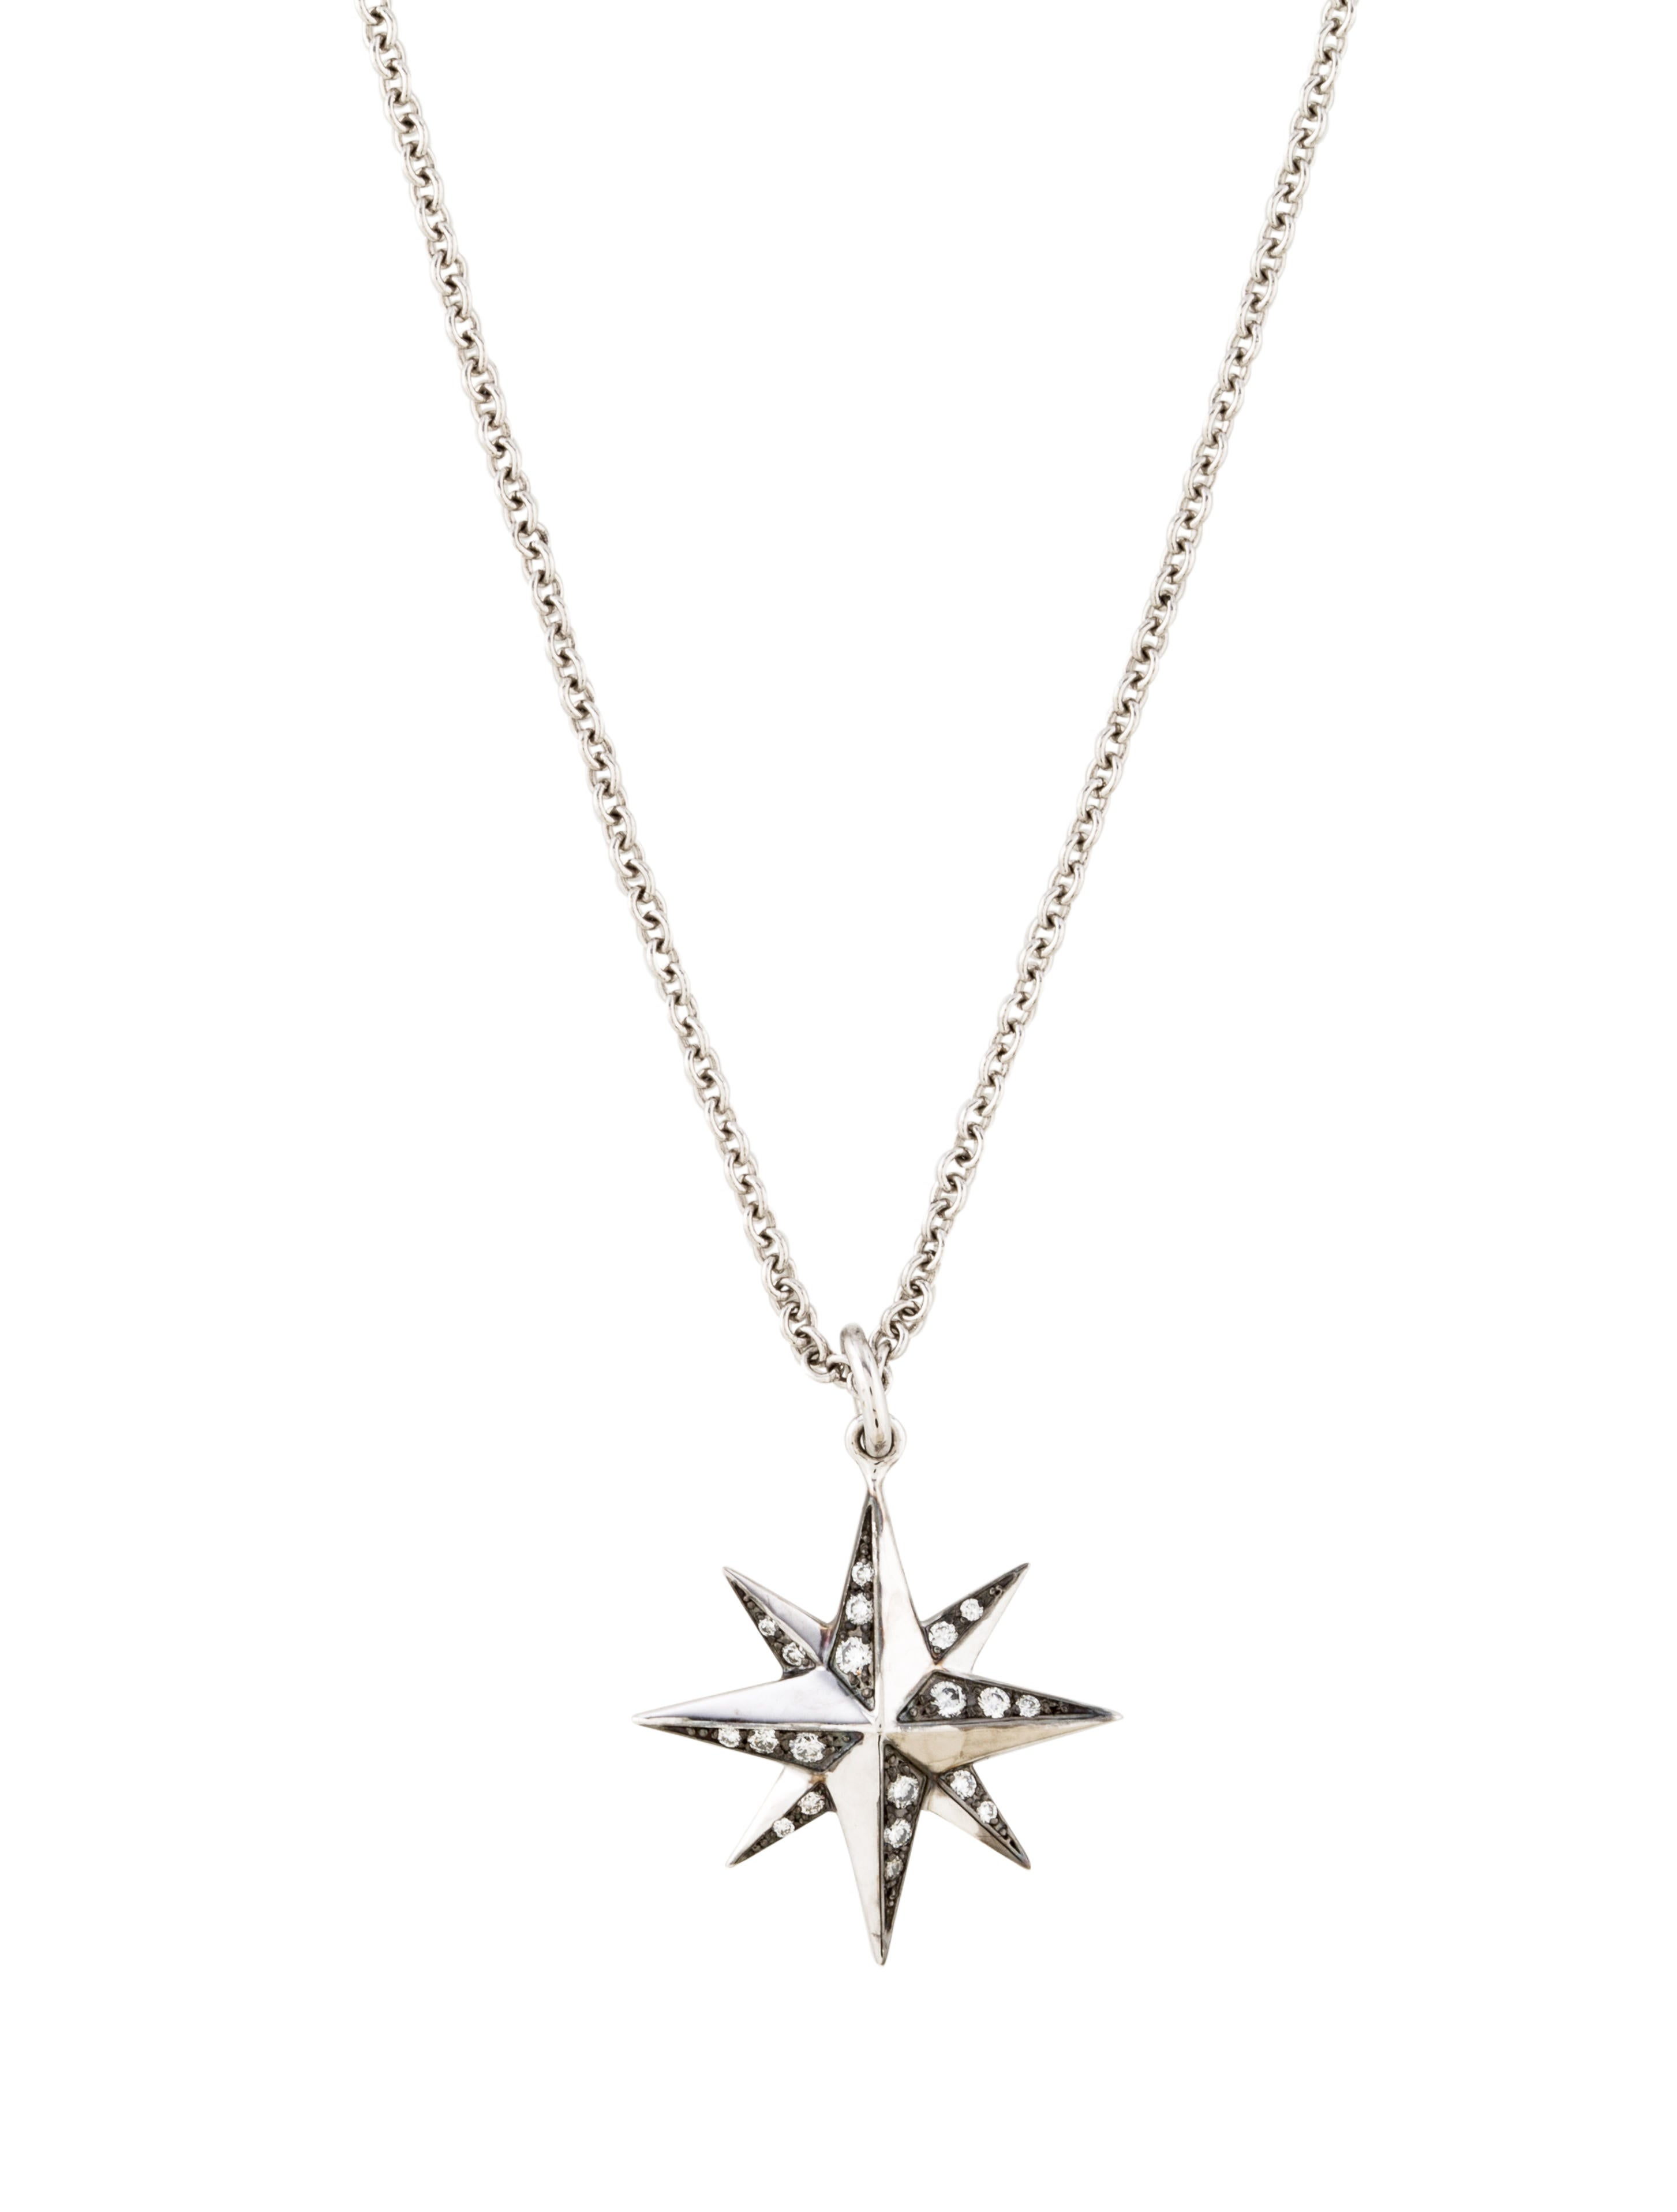 Kwiat Diamond Star Pendant Necklace Necklaces KWI